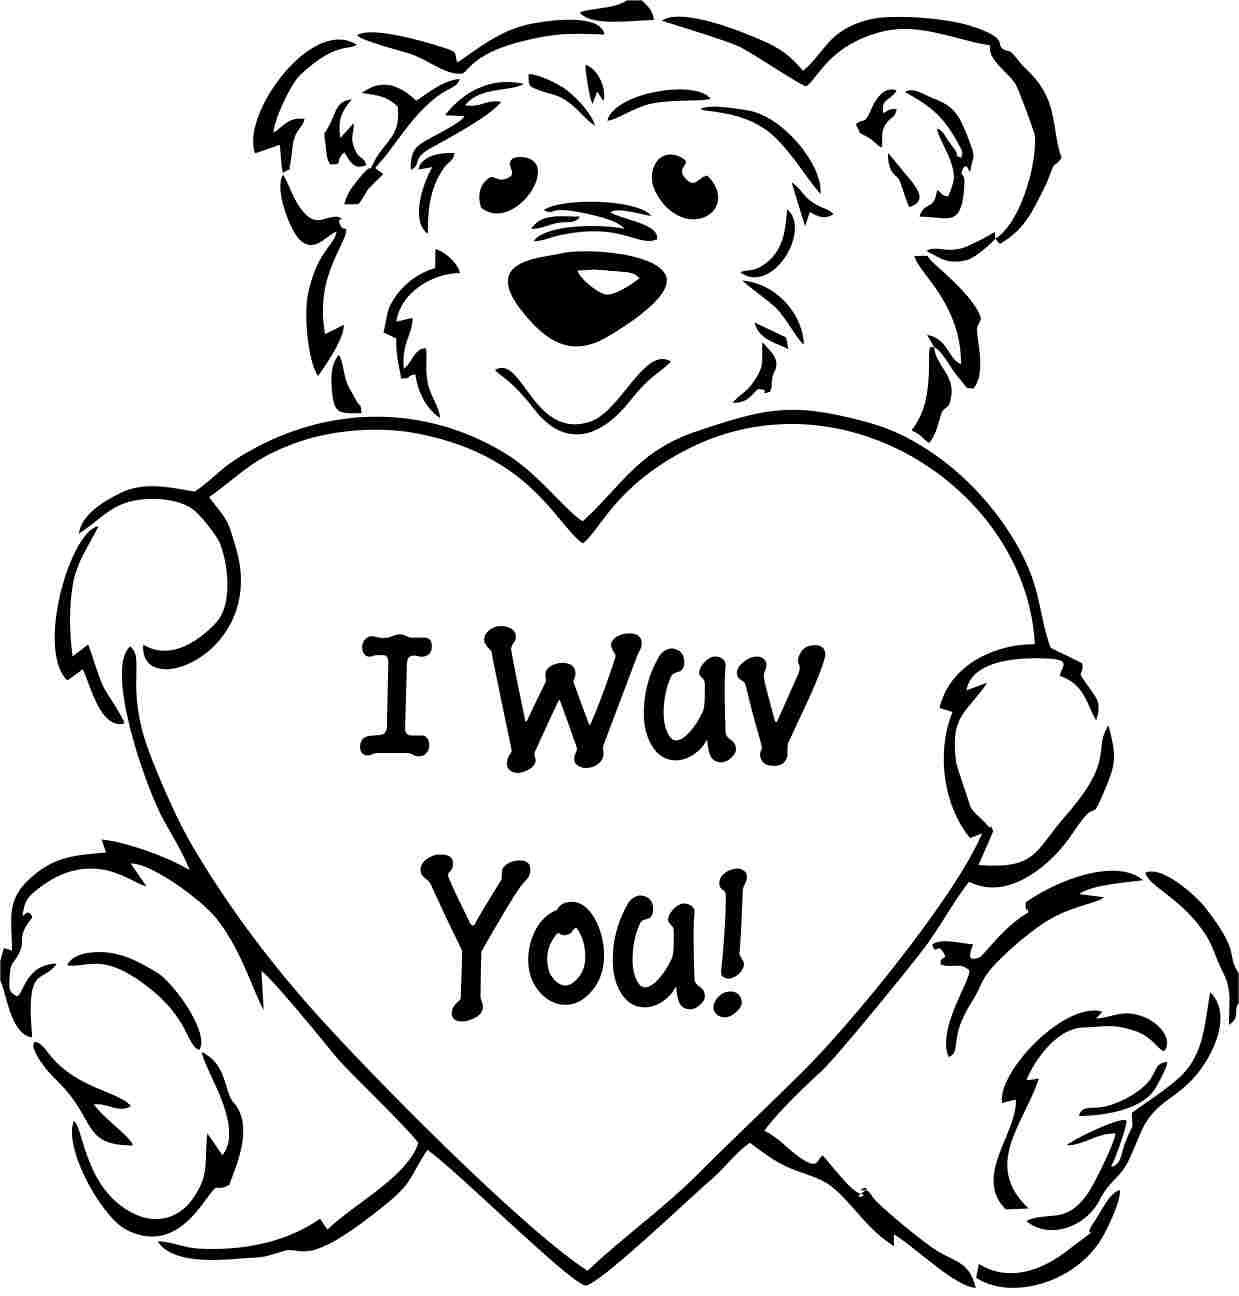 Valentines Printable Coloring Pages Valentines Day Coloring Page Collection Of I Love You Free Valentines S0189 Coloring Pages Printable Collection